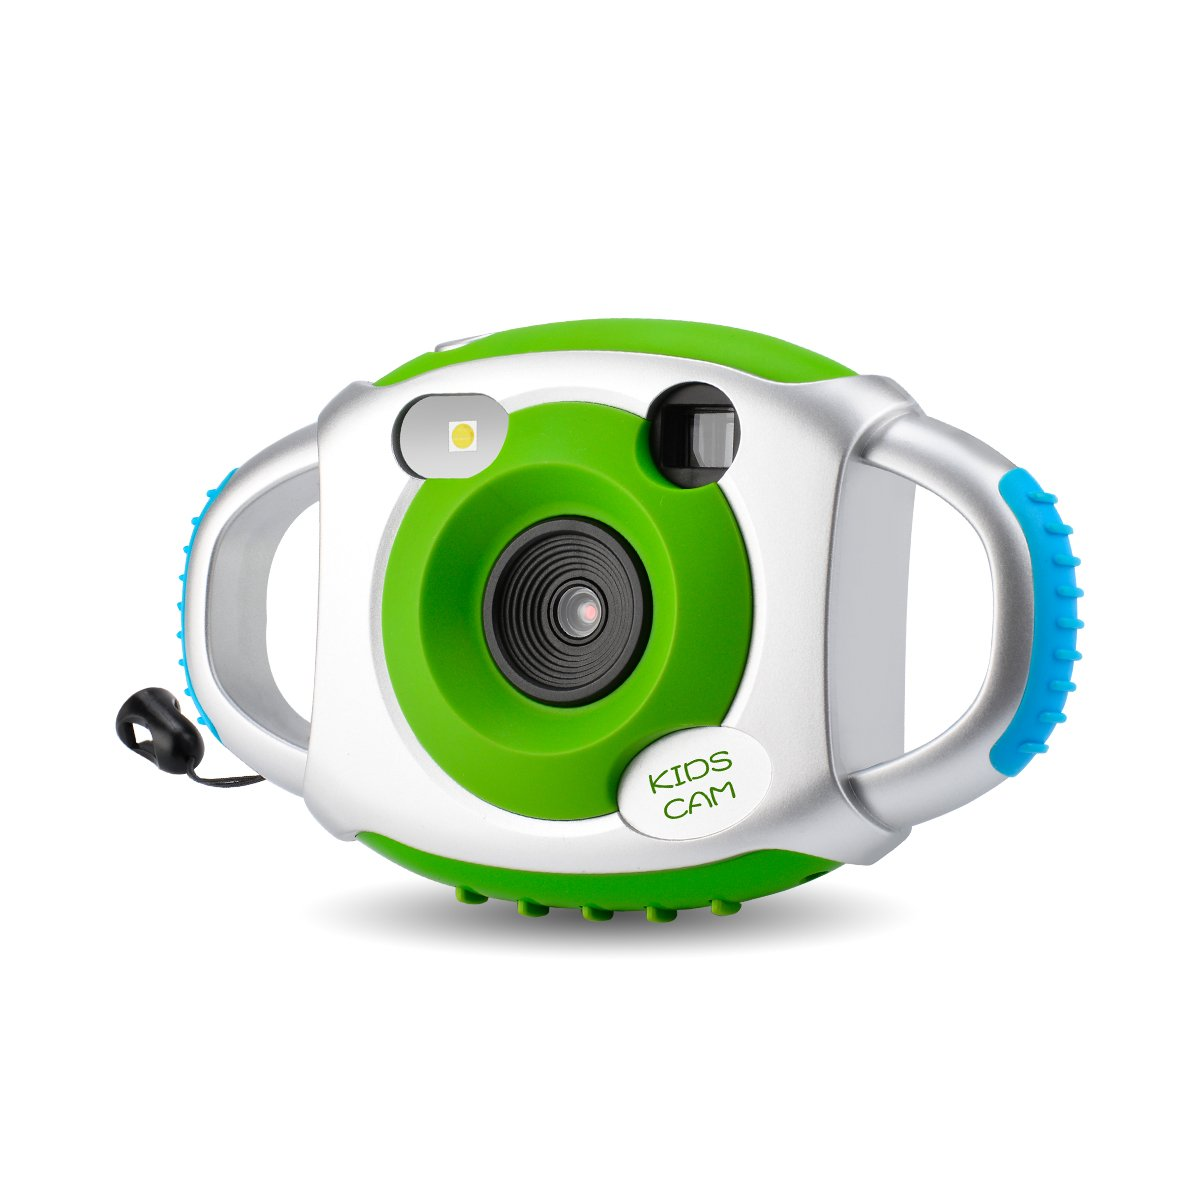 Kids Camera BIBENE Kids Digital Camera Boys Girls, Digital Video Camera 1.44 inch TFT Display SD Card Slot USB Cable, Children C60S20